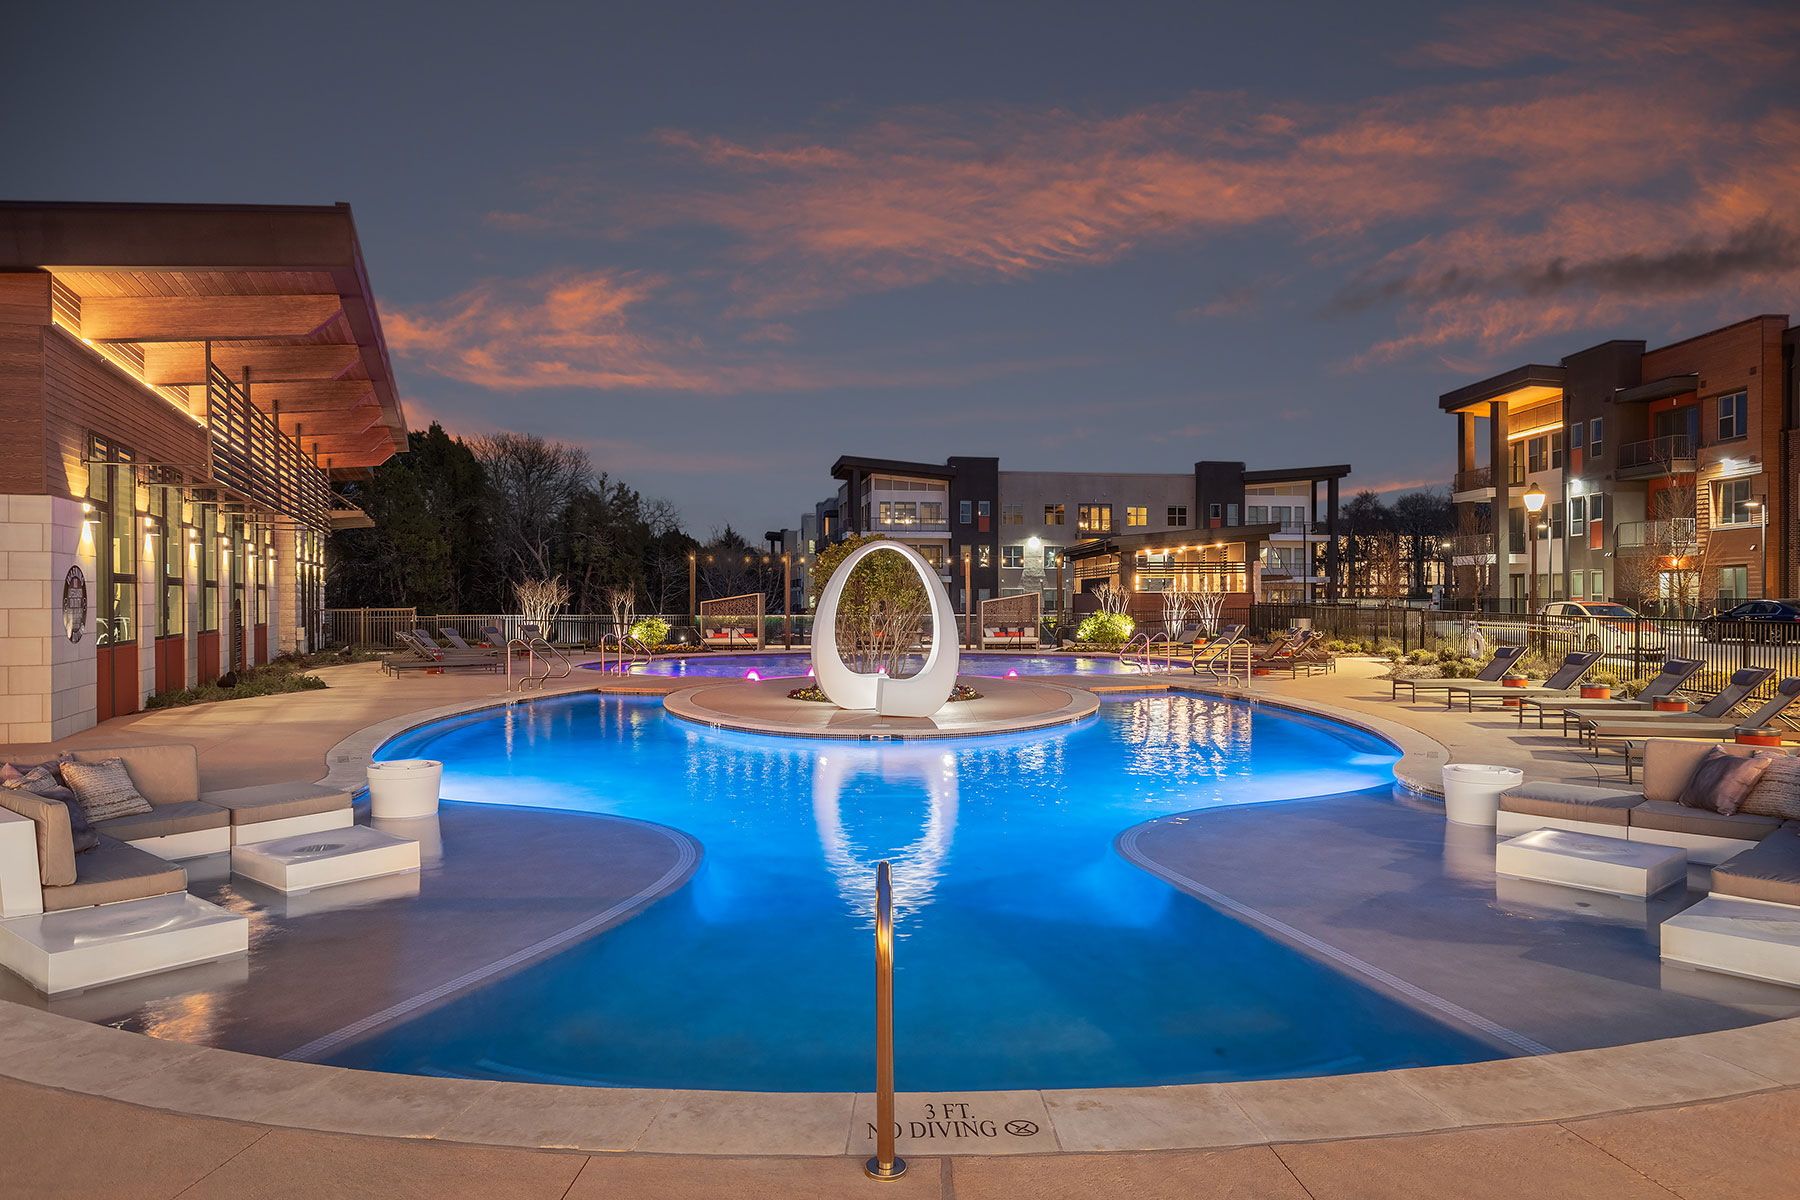 Night time pool shot with oval architecture sculpture, lounge seating, and lighted buildings in the background.